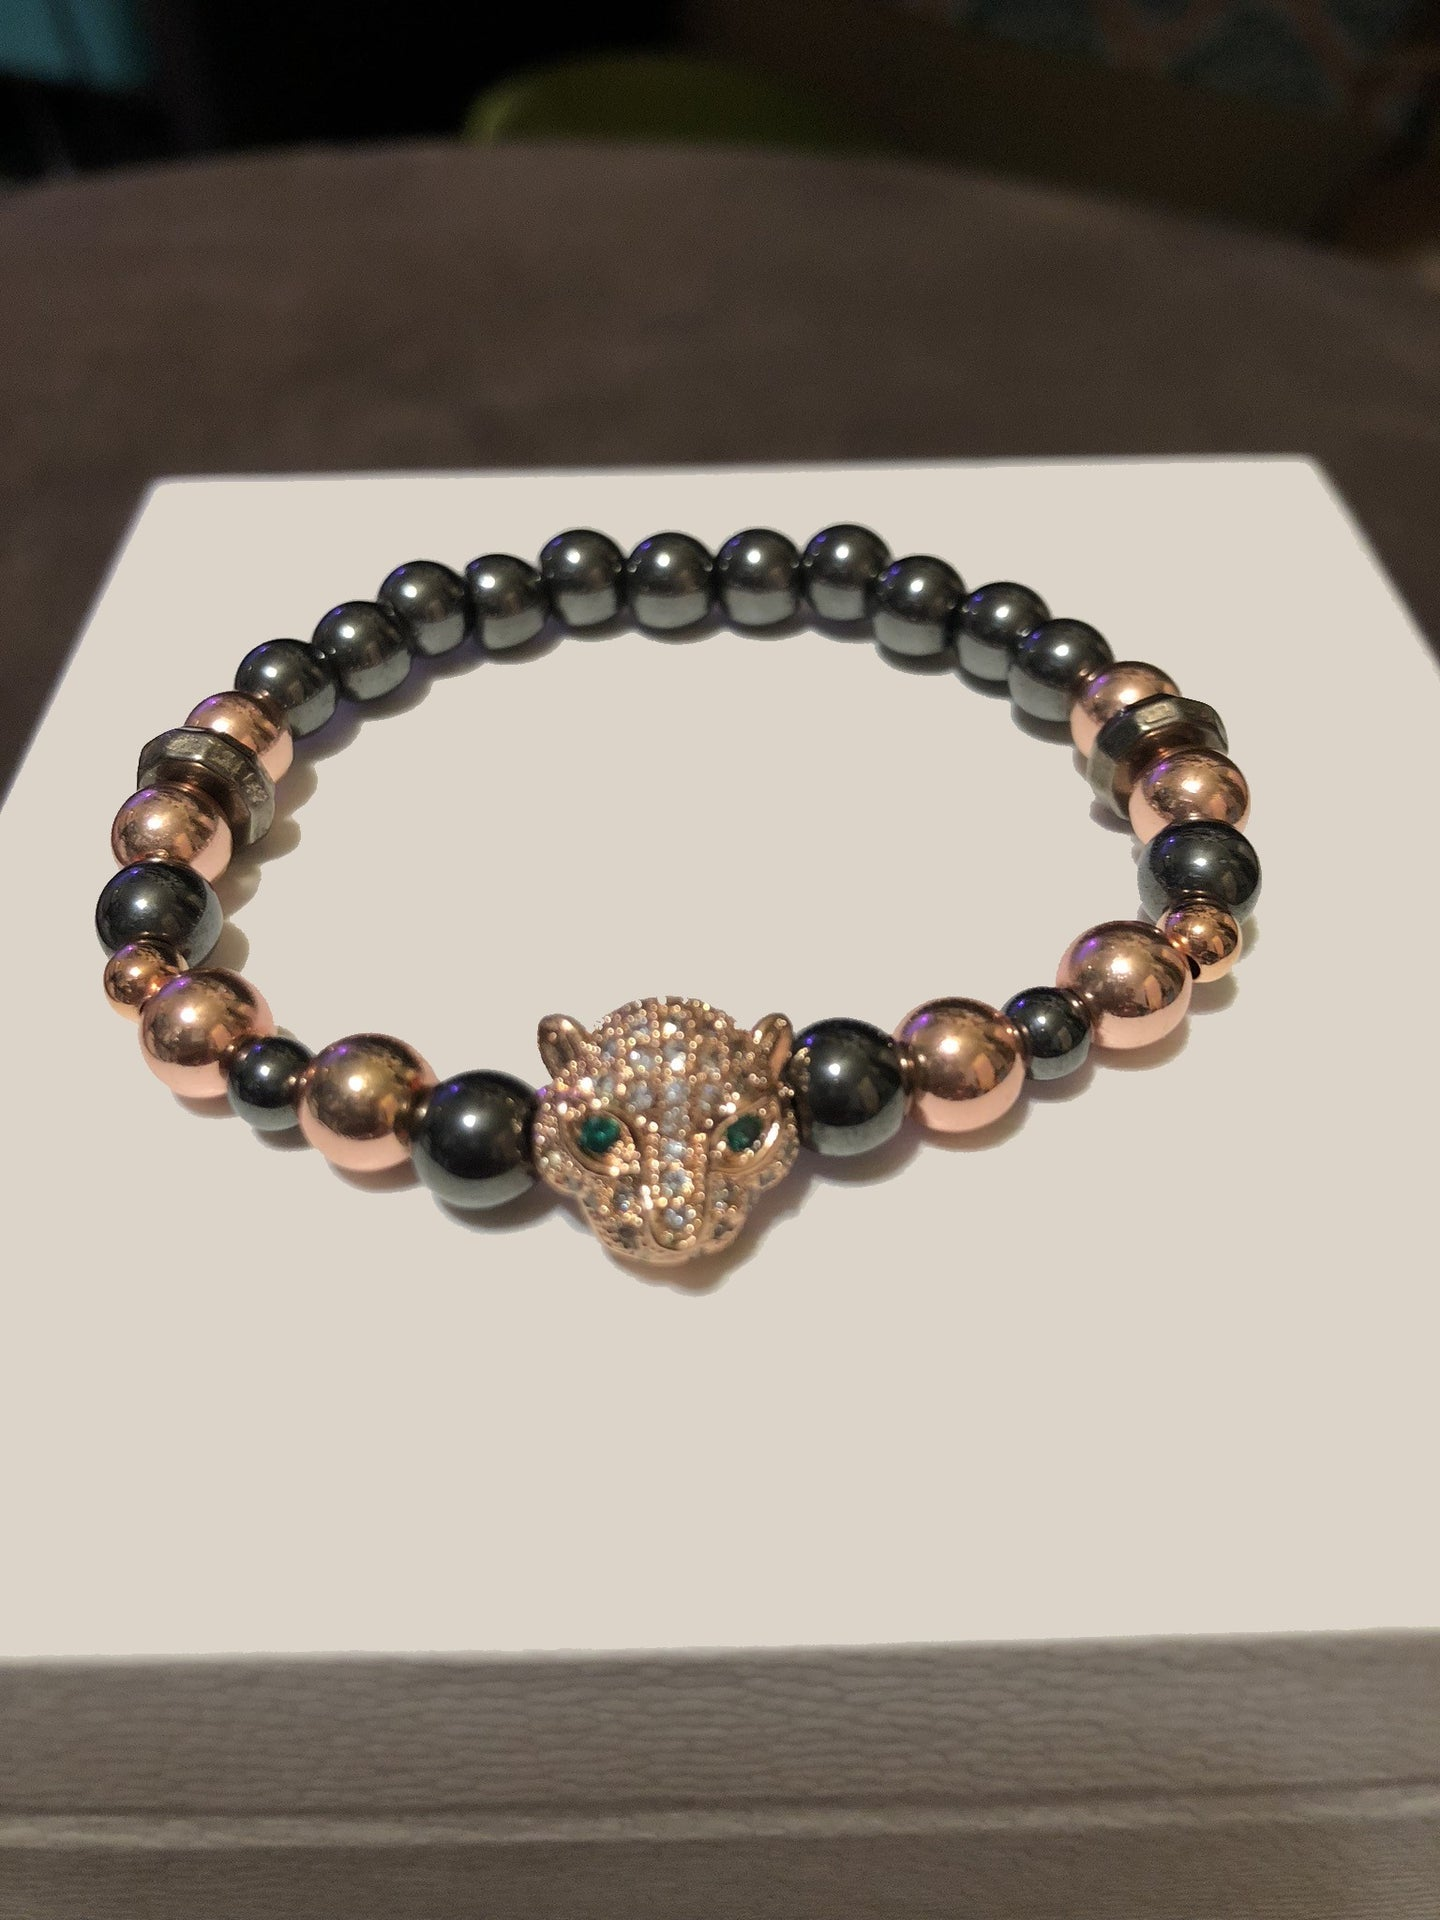 Hematite Beads with Rose Gold CZ Leopard Metal Accents